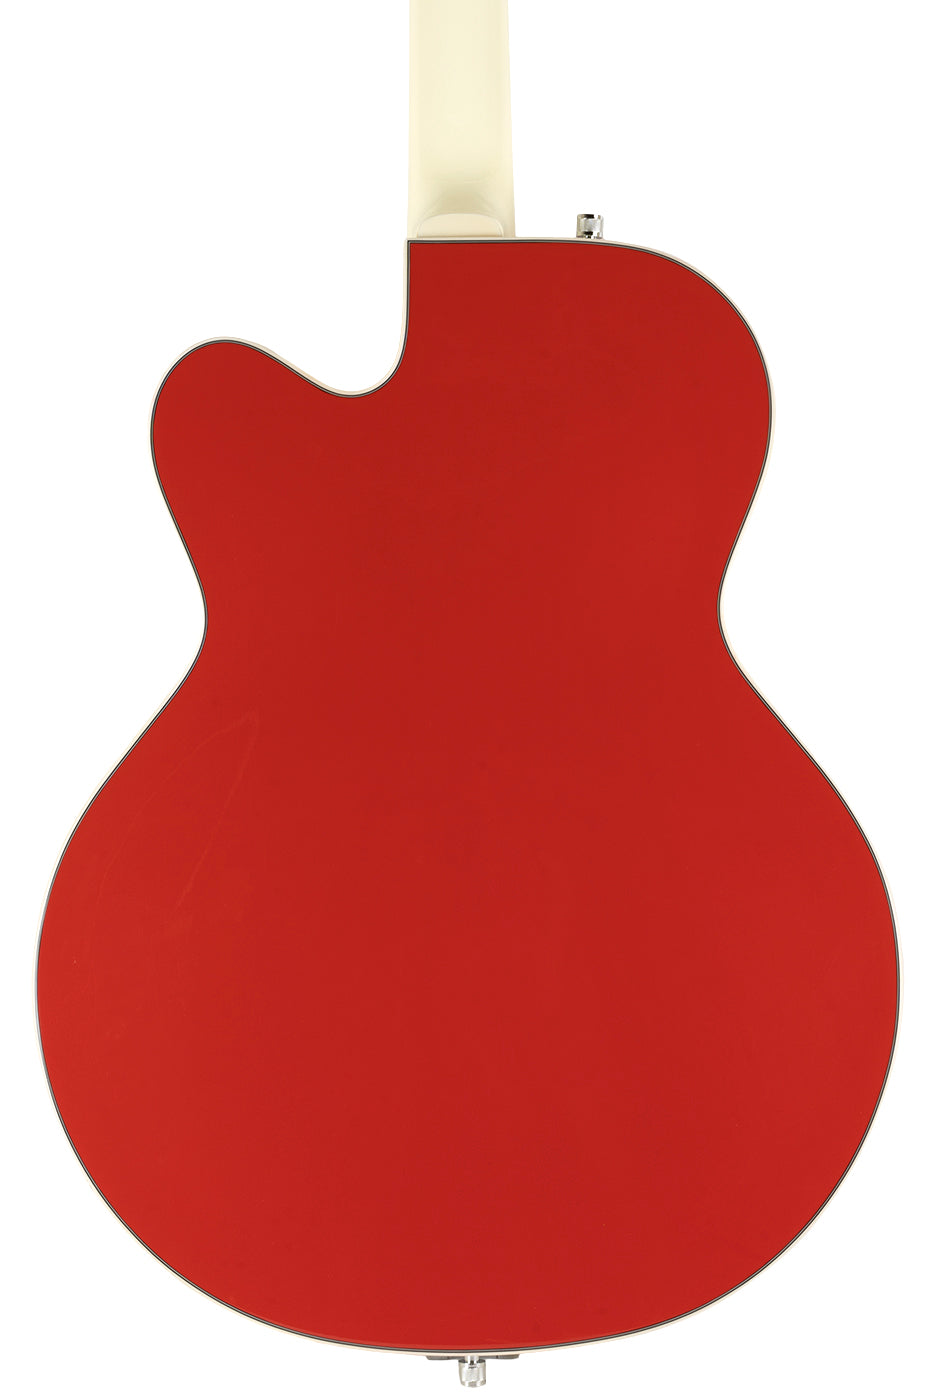 Used 2021 Gretsch G5410T Tri-Five Limited Two-Tone Fiesta Red & Vintage White image 4